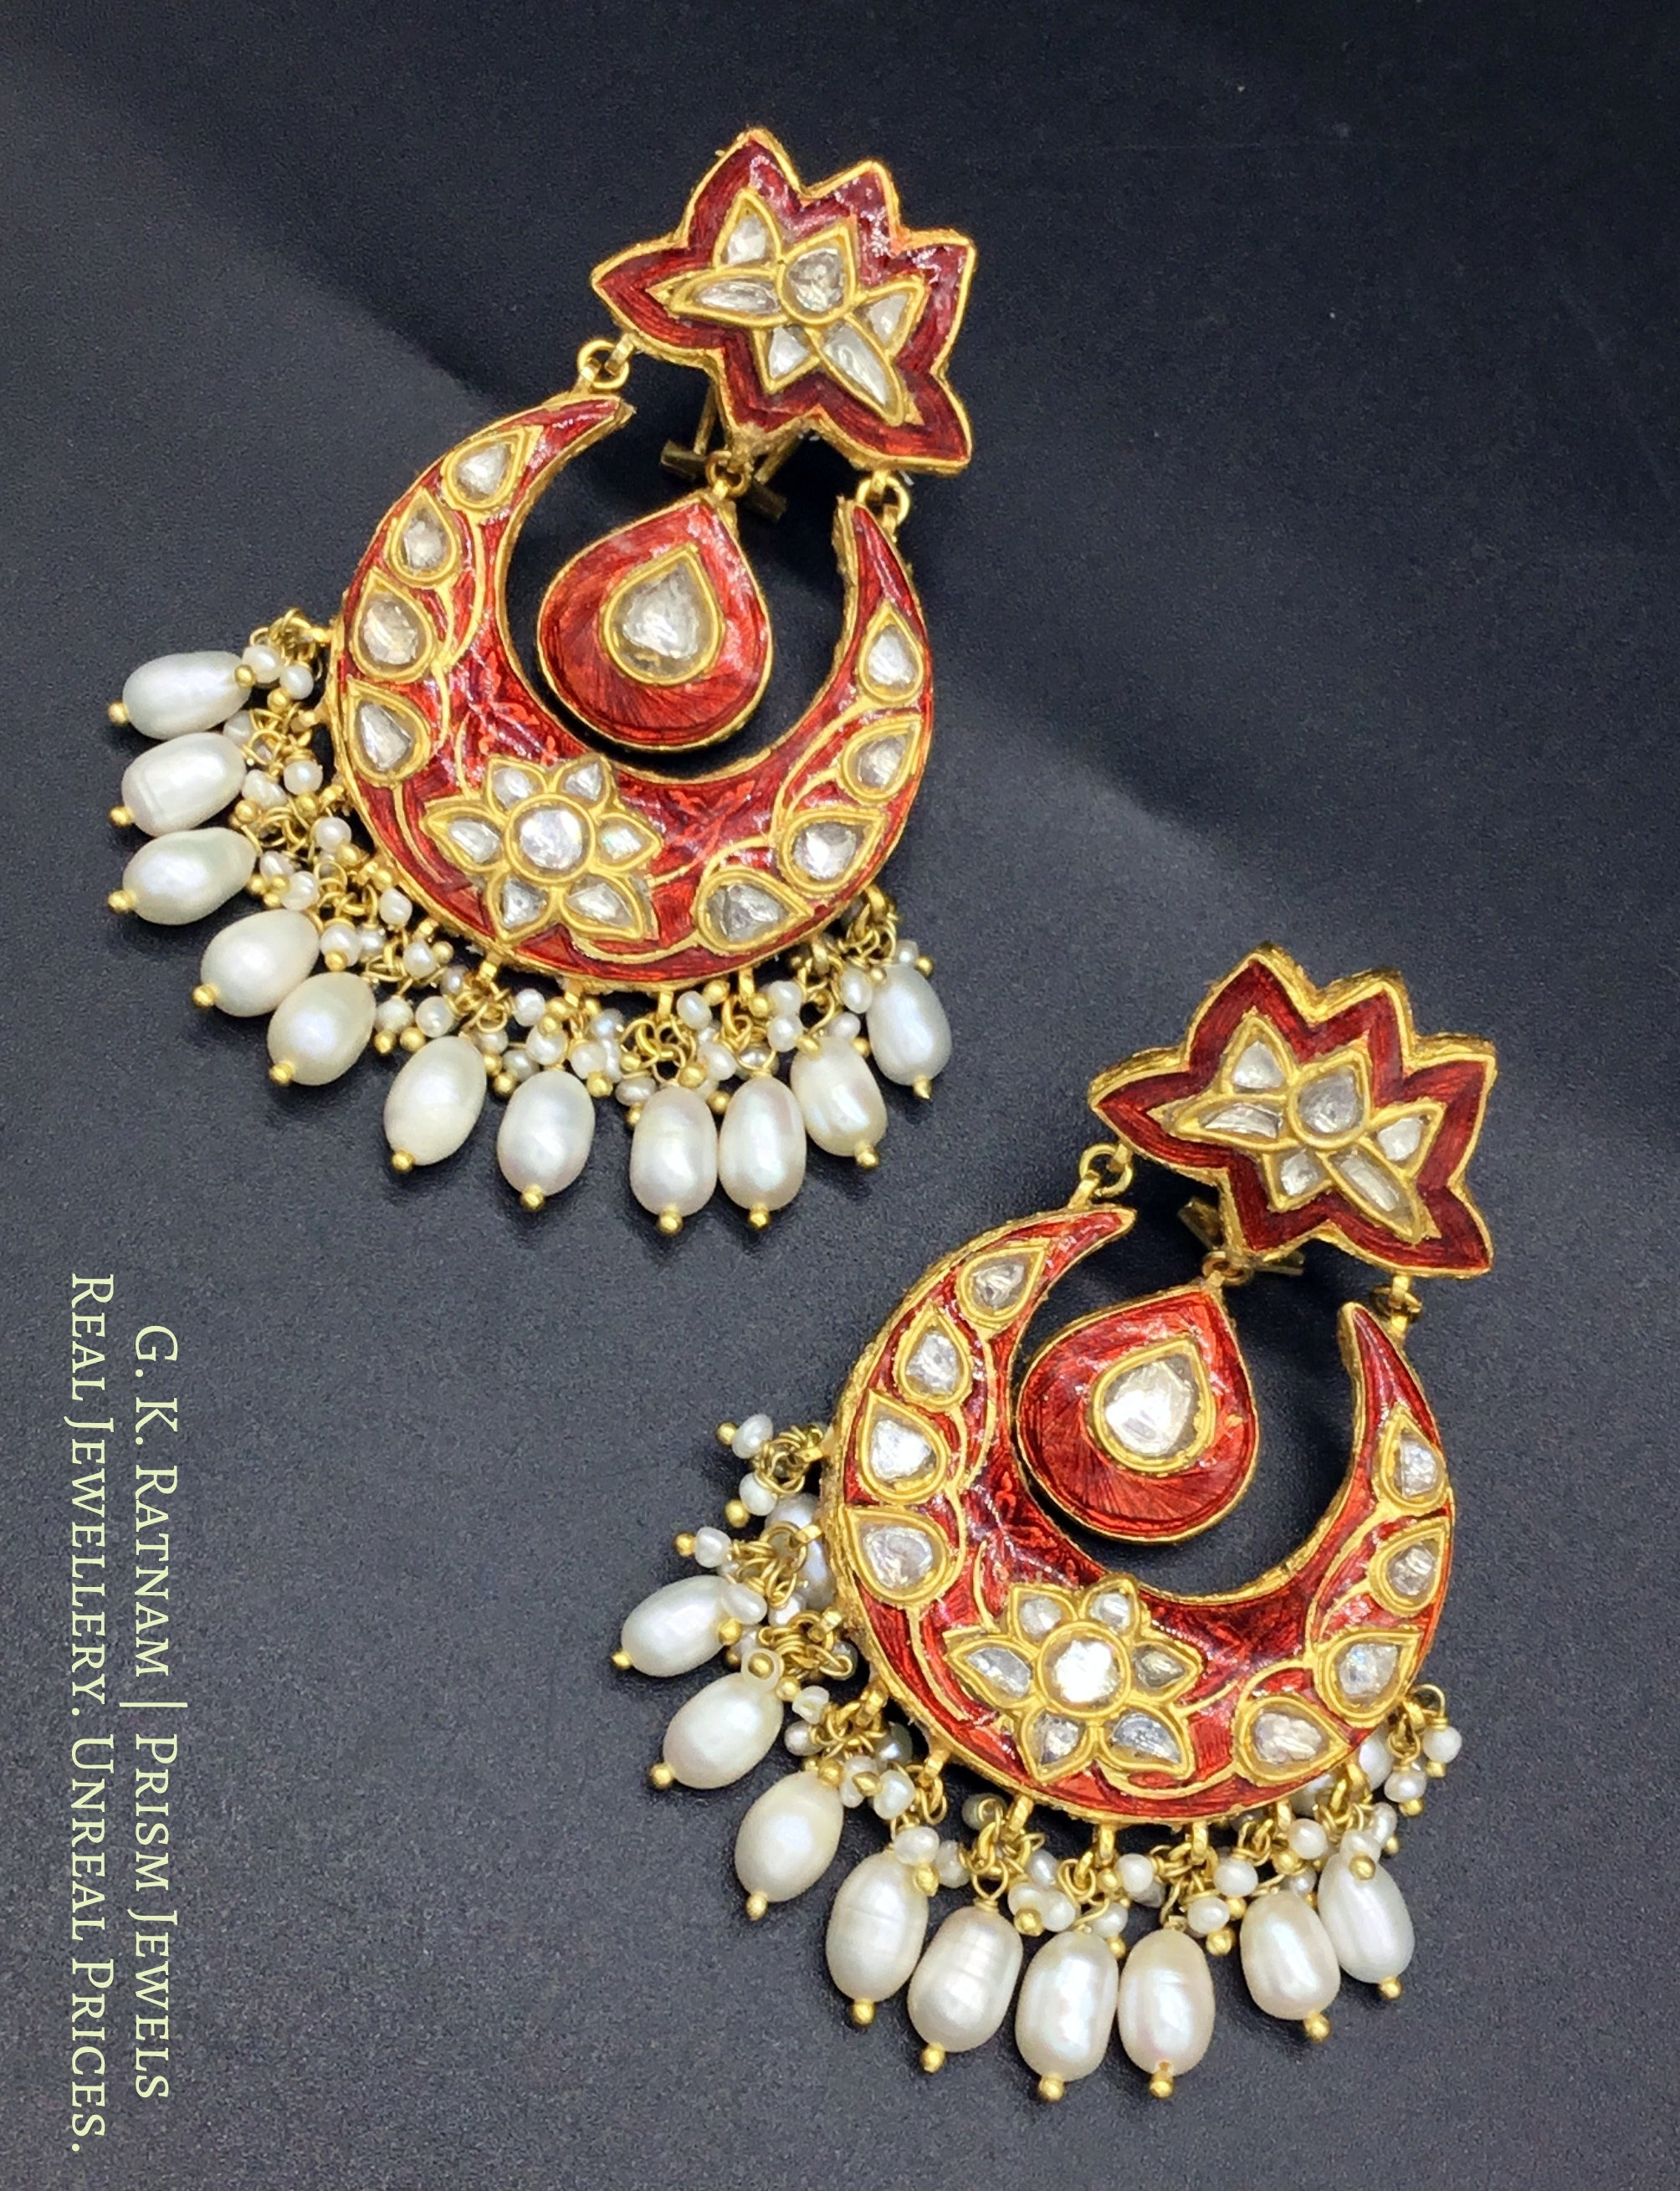 23k Gold and Diamond Polki Chand Bali Earring Pair with red meenakari - gold diamond polki kundan meena jadau jewellery